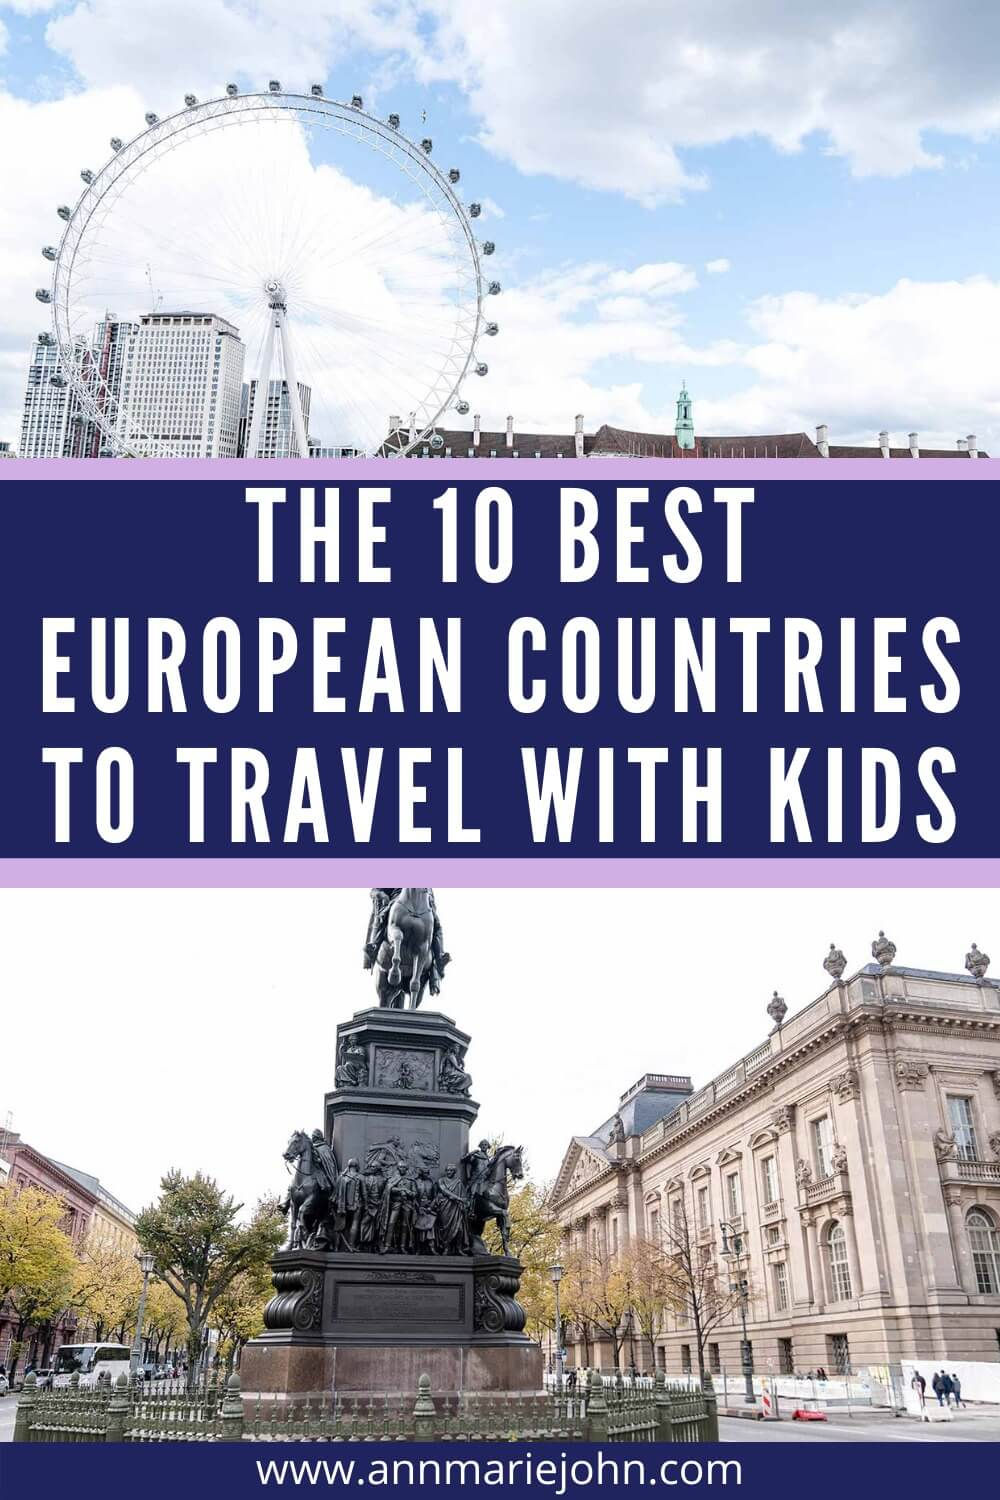 The Ten Best European Countries to Travel With Kids